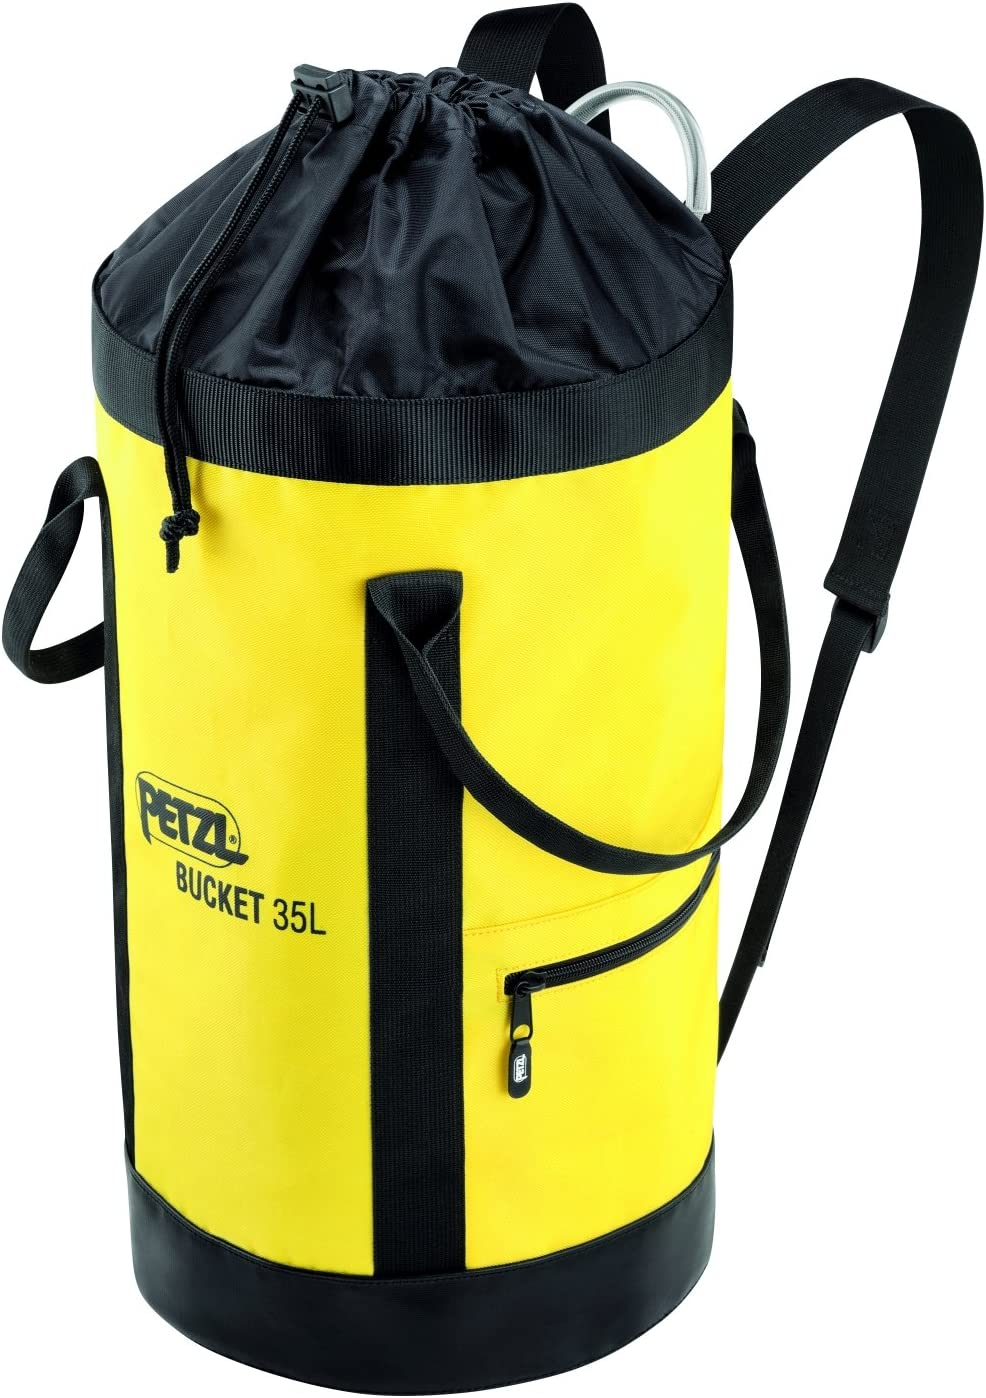 PETZL - Bucket, Fabric Pack, Remains Upright, 35 Liters : Sports & Outdoors